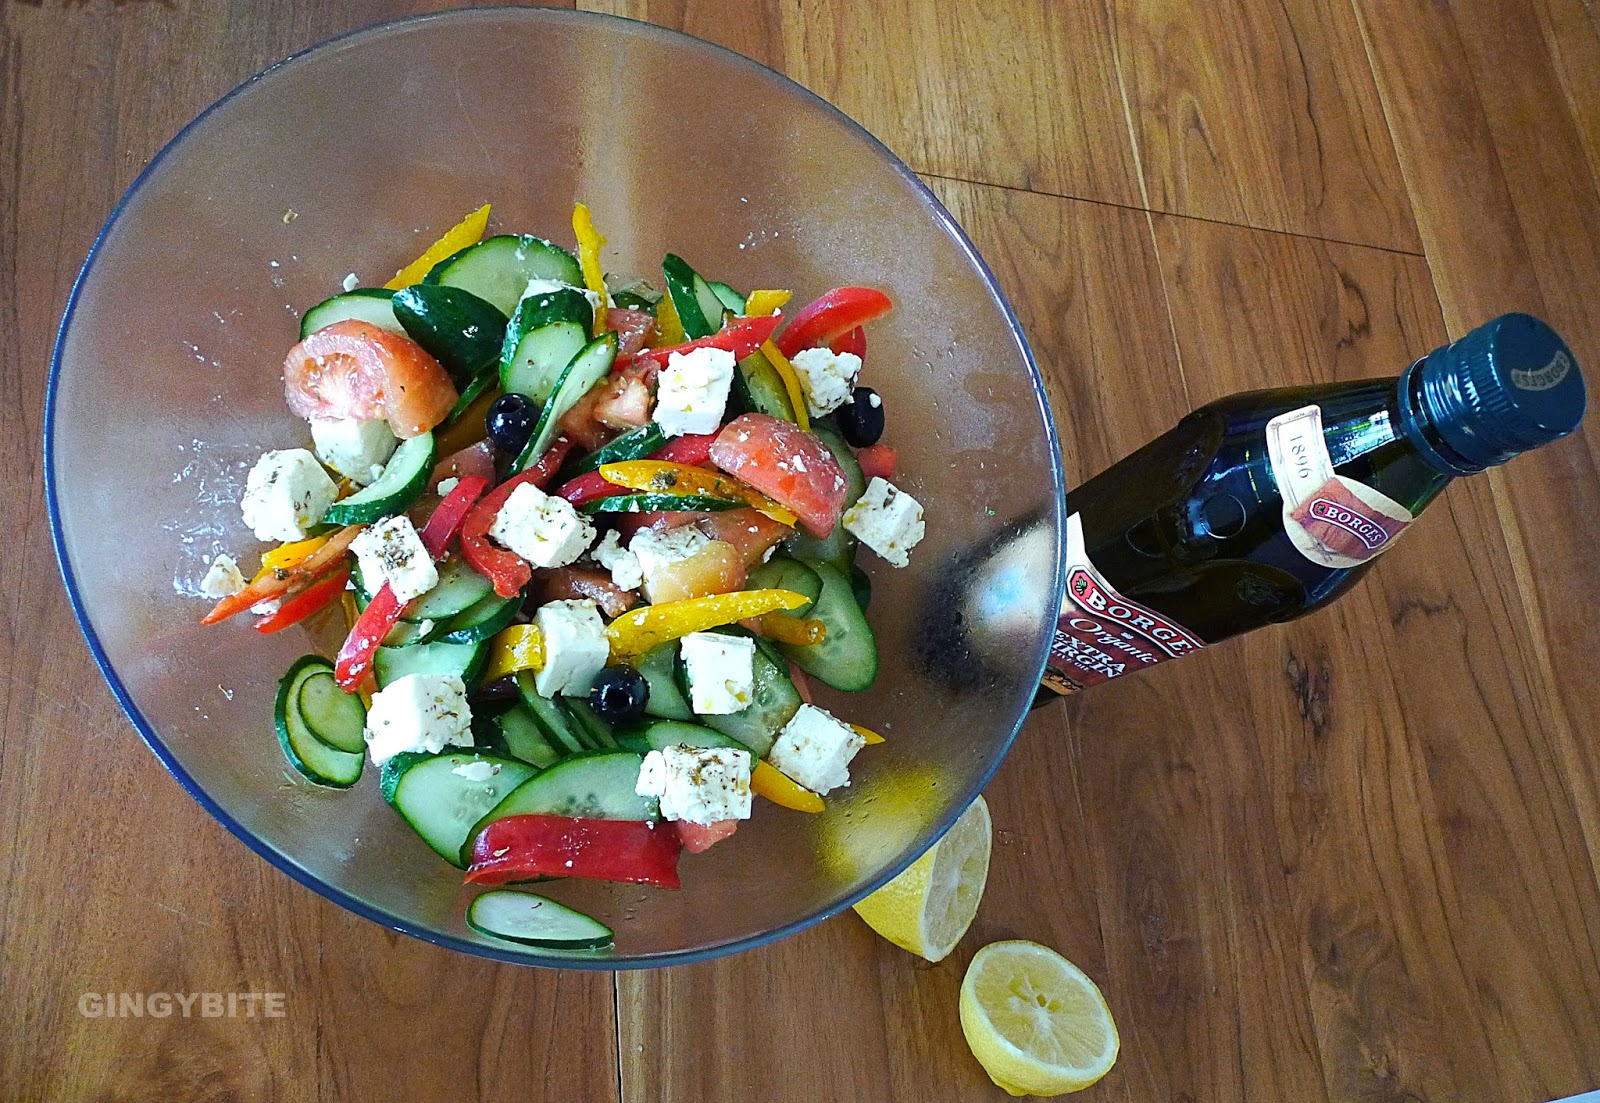 The Simple and Best Tasting Greek Salad